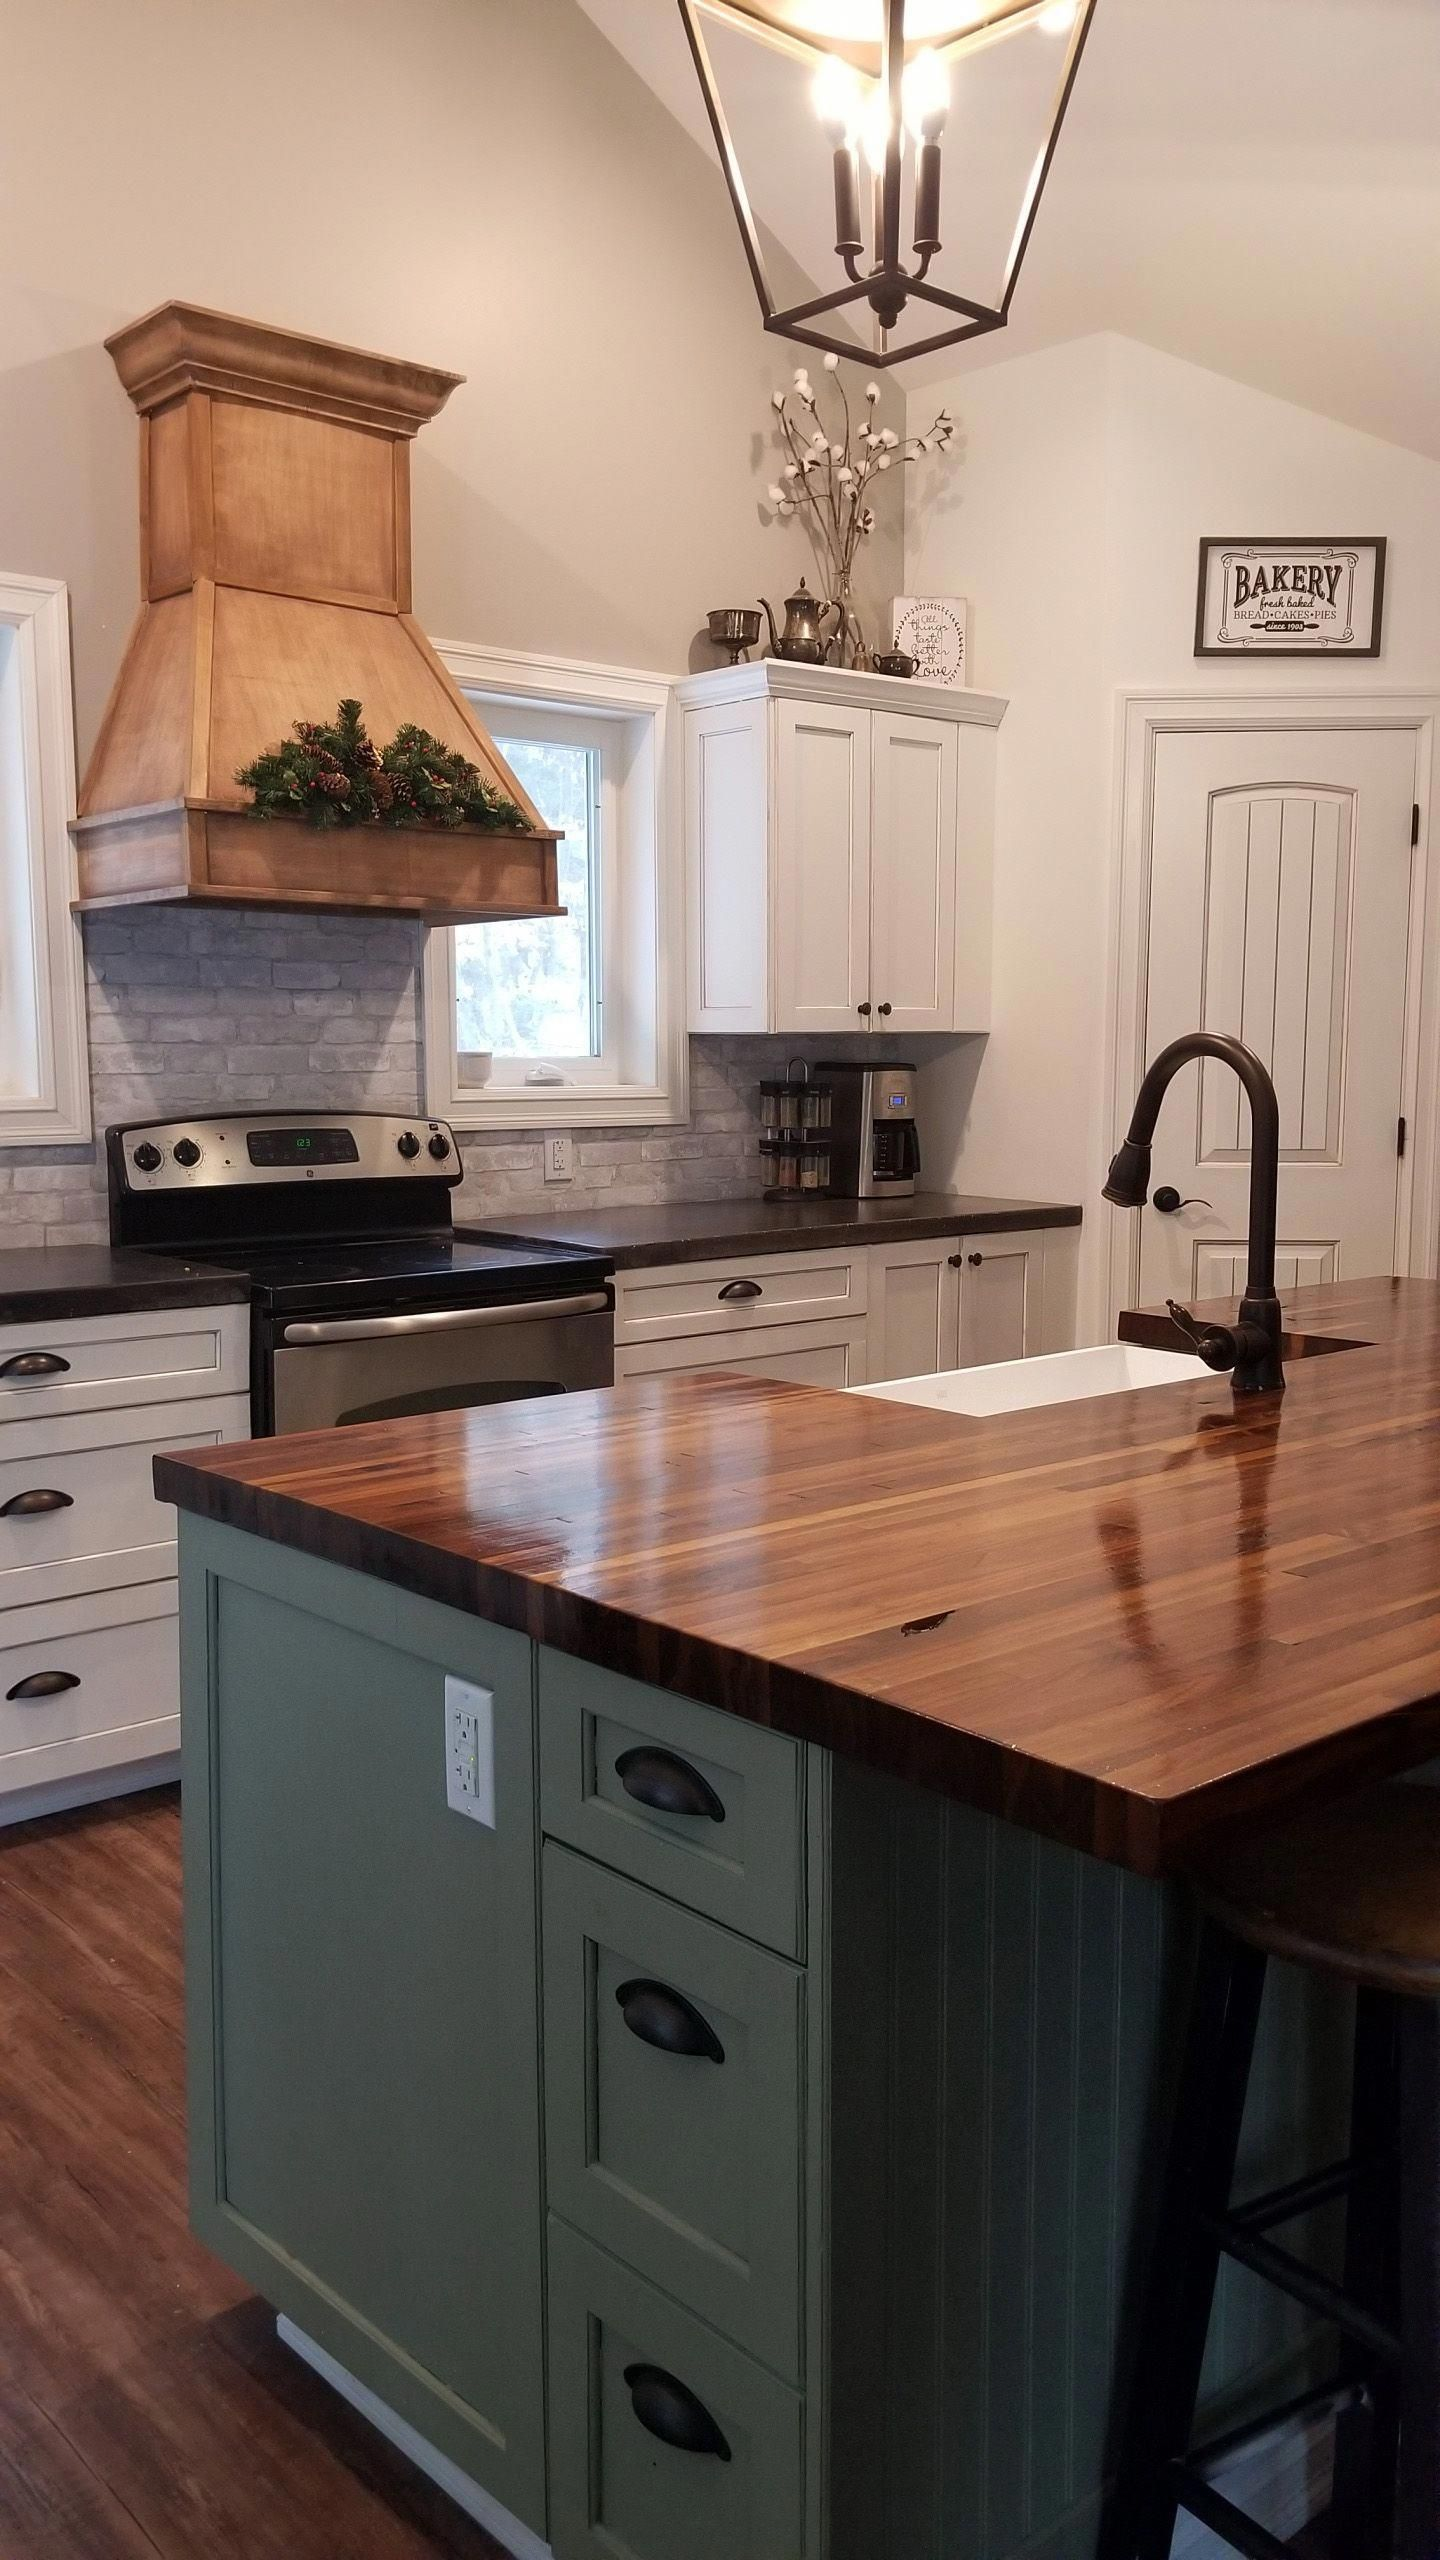 My farmhouse kitchen. The heart of our home. Every part of